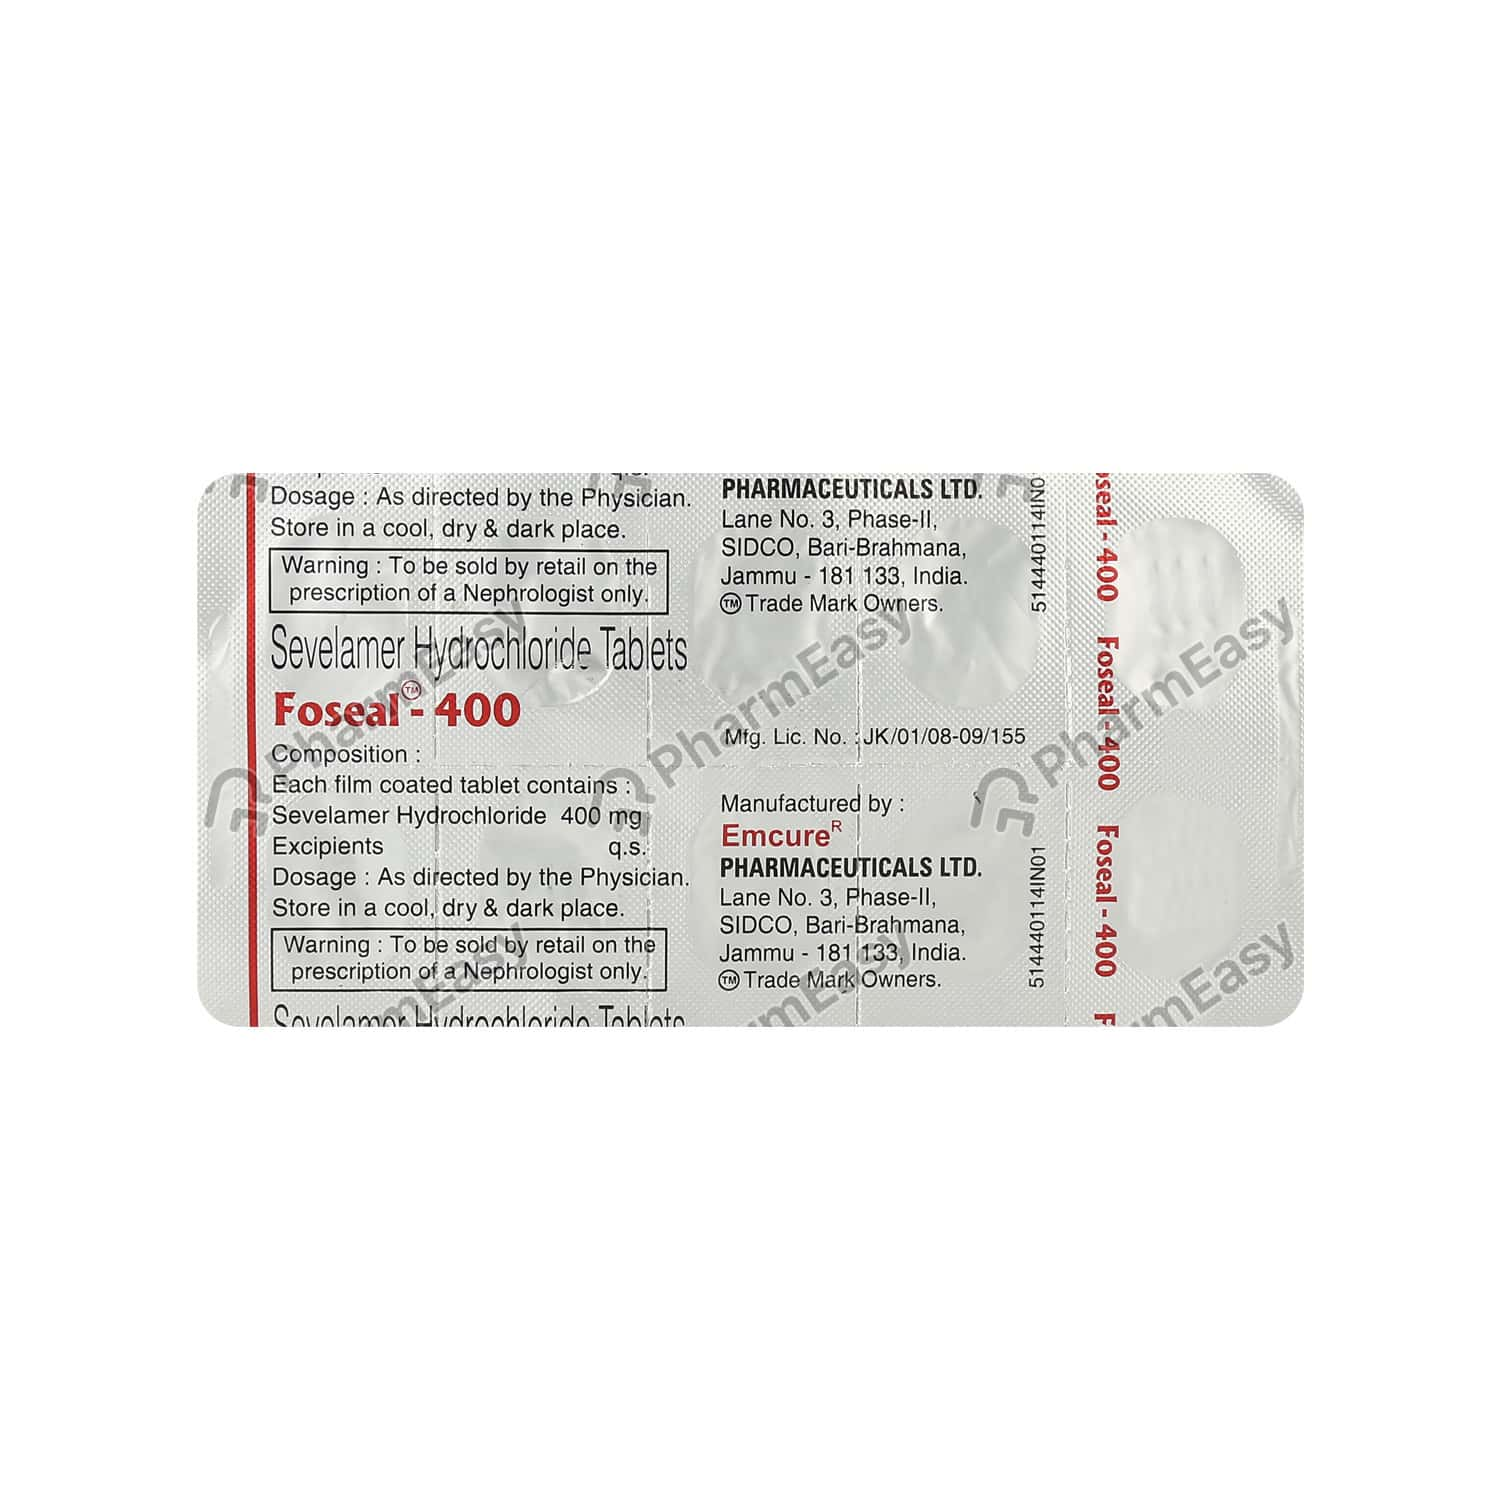 Foseal 400mg Tablet